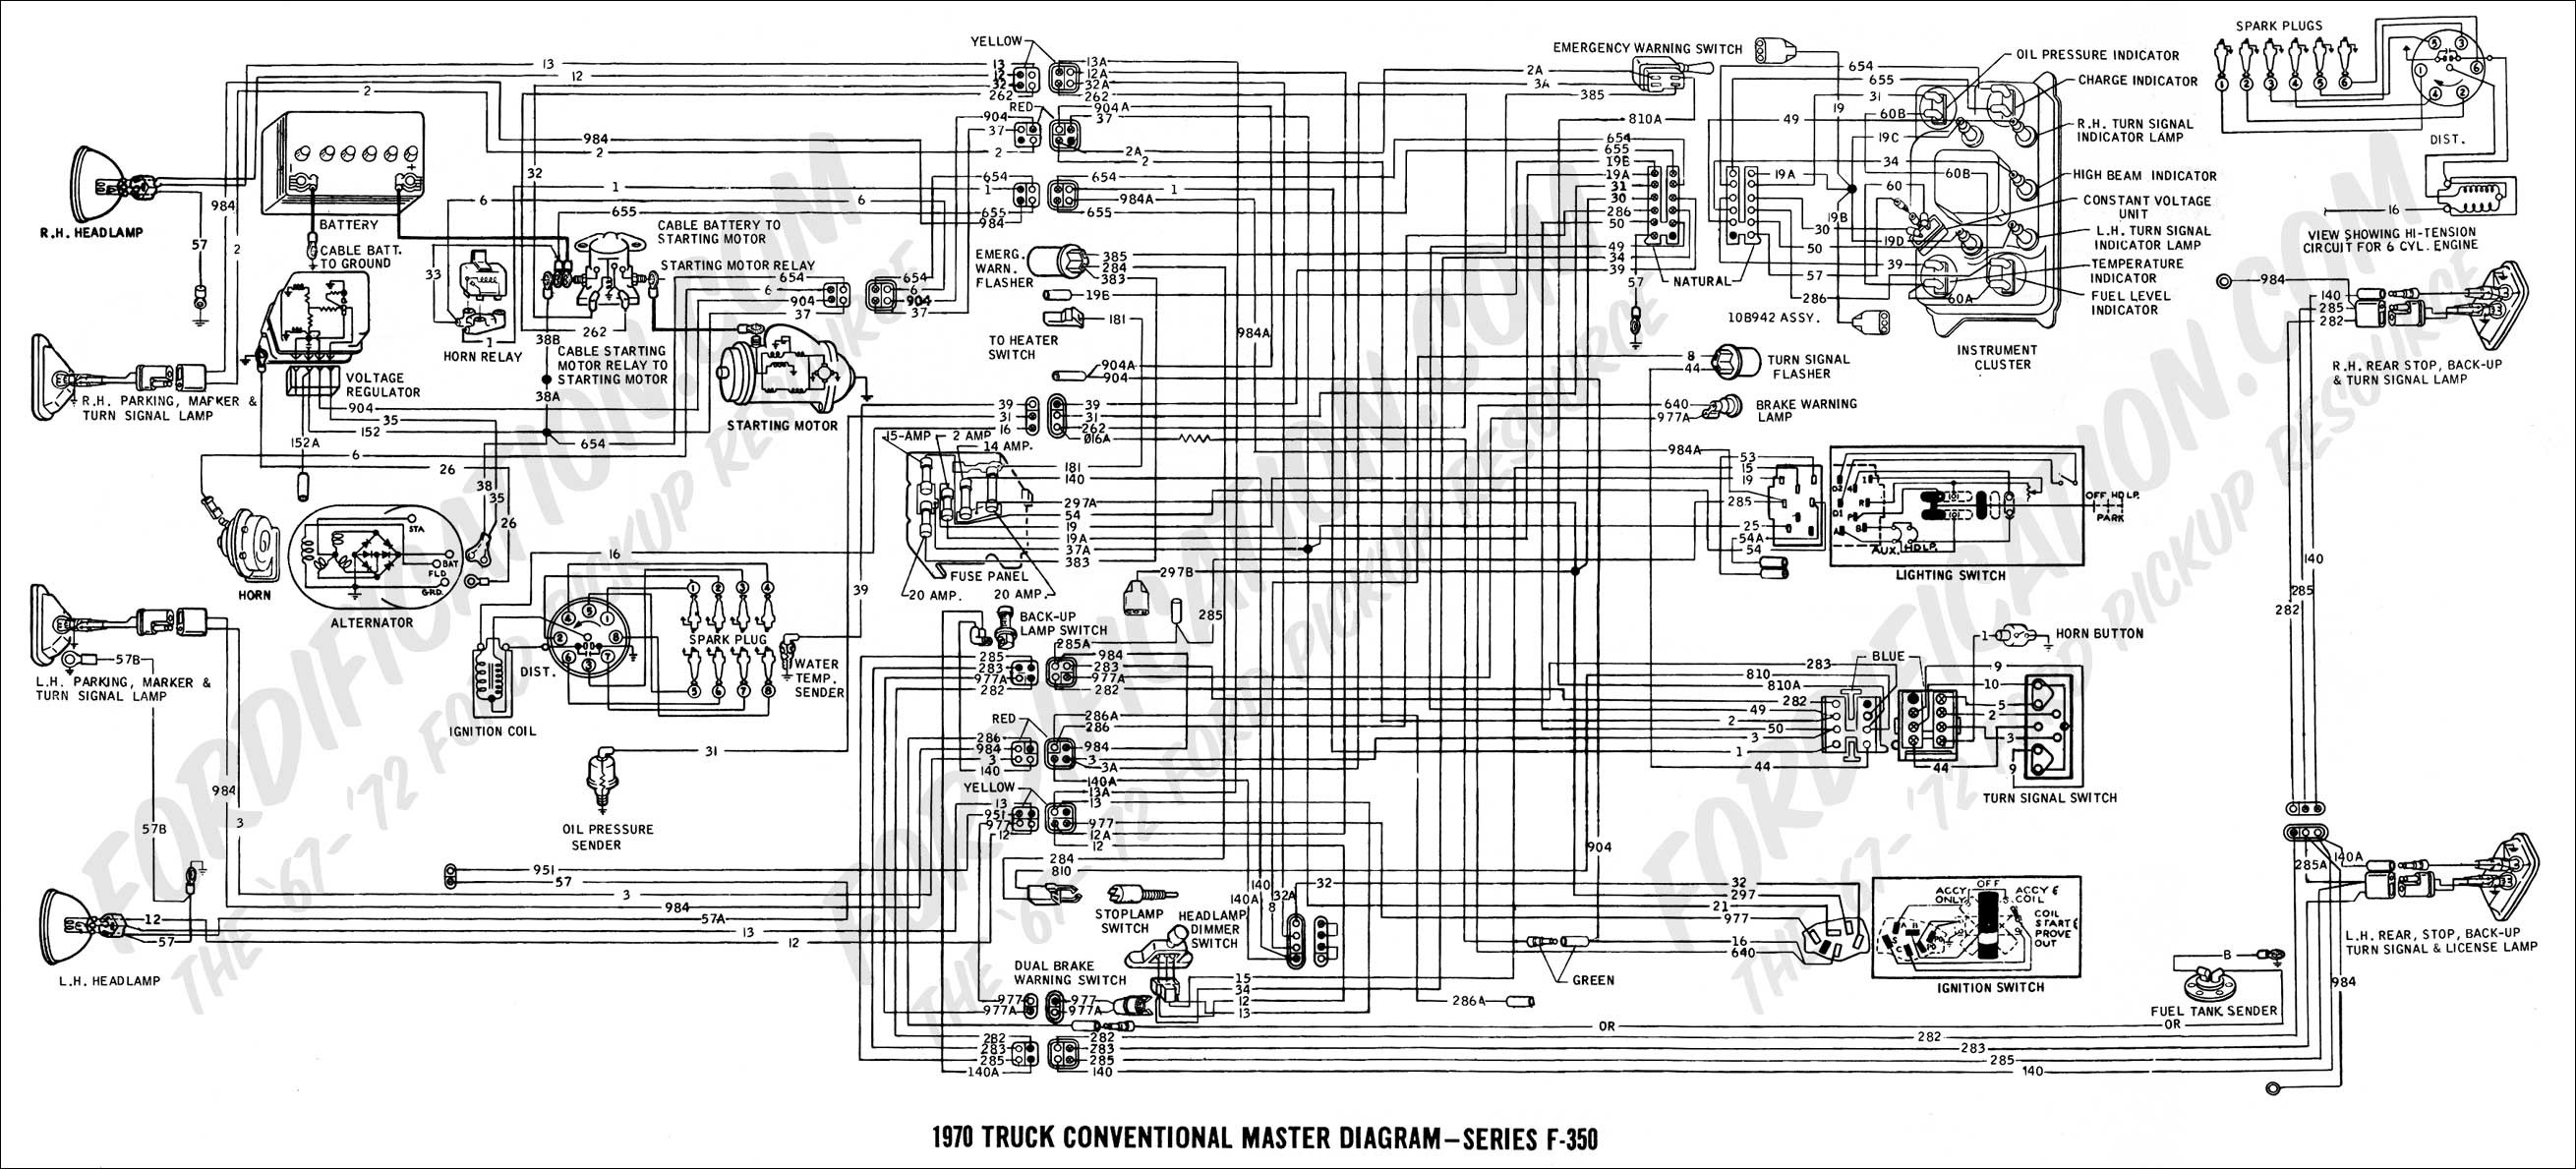 2001 Mitsubishi Eclipse Engine Diagram My Wiring Diagrams Free 70 Bronco Image About Rh Wuzzie Co 1995 Saturn Sl1 2000 Ls2